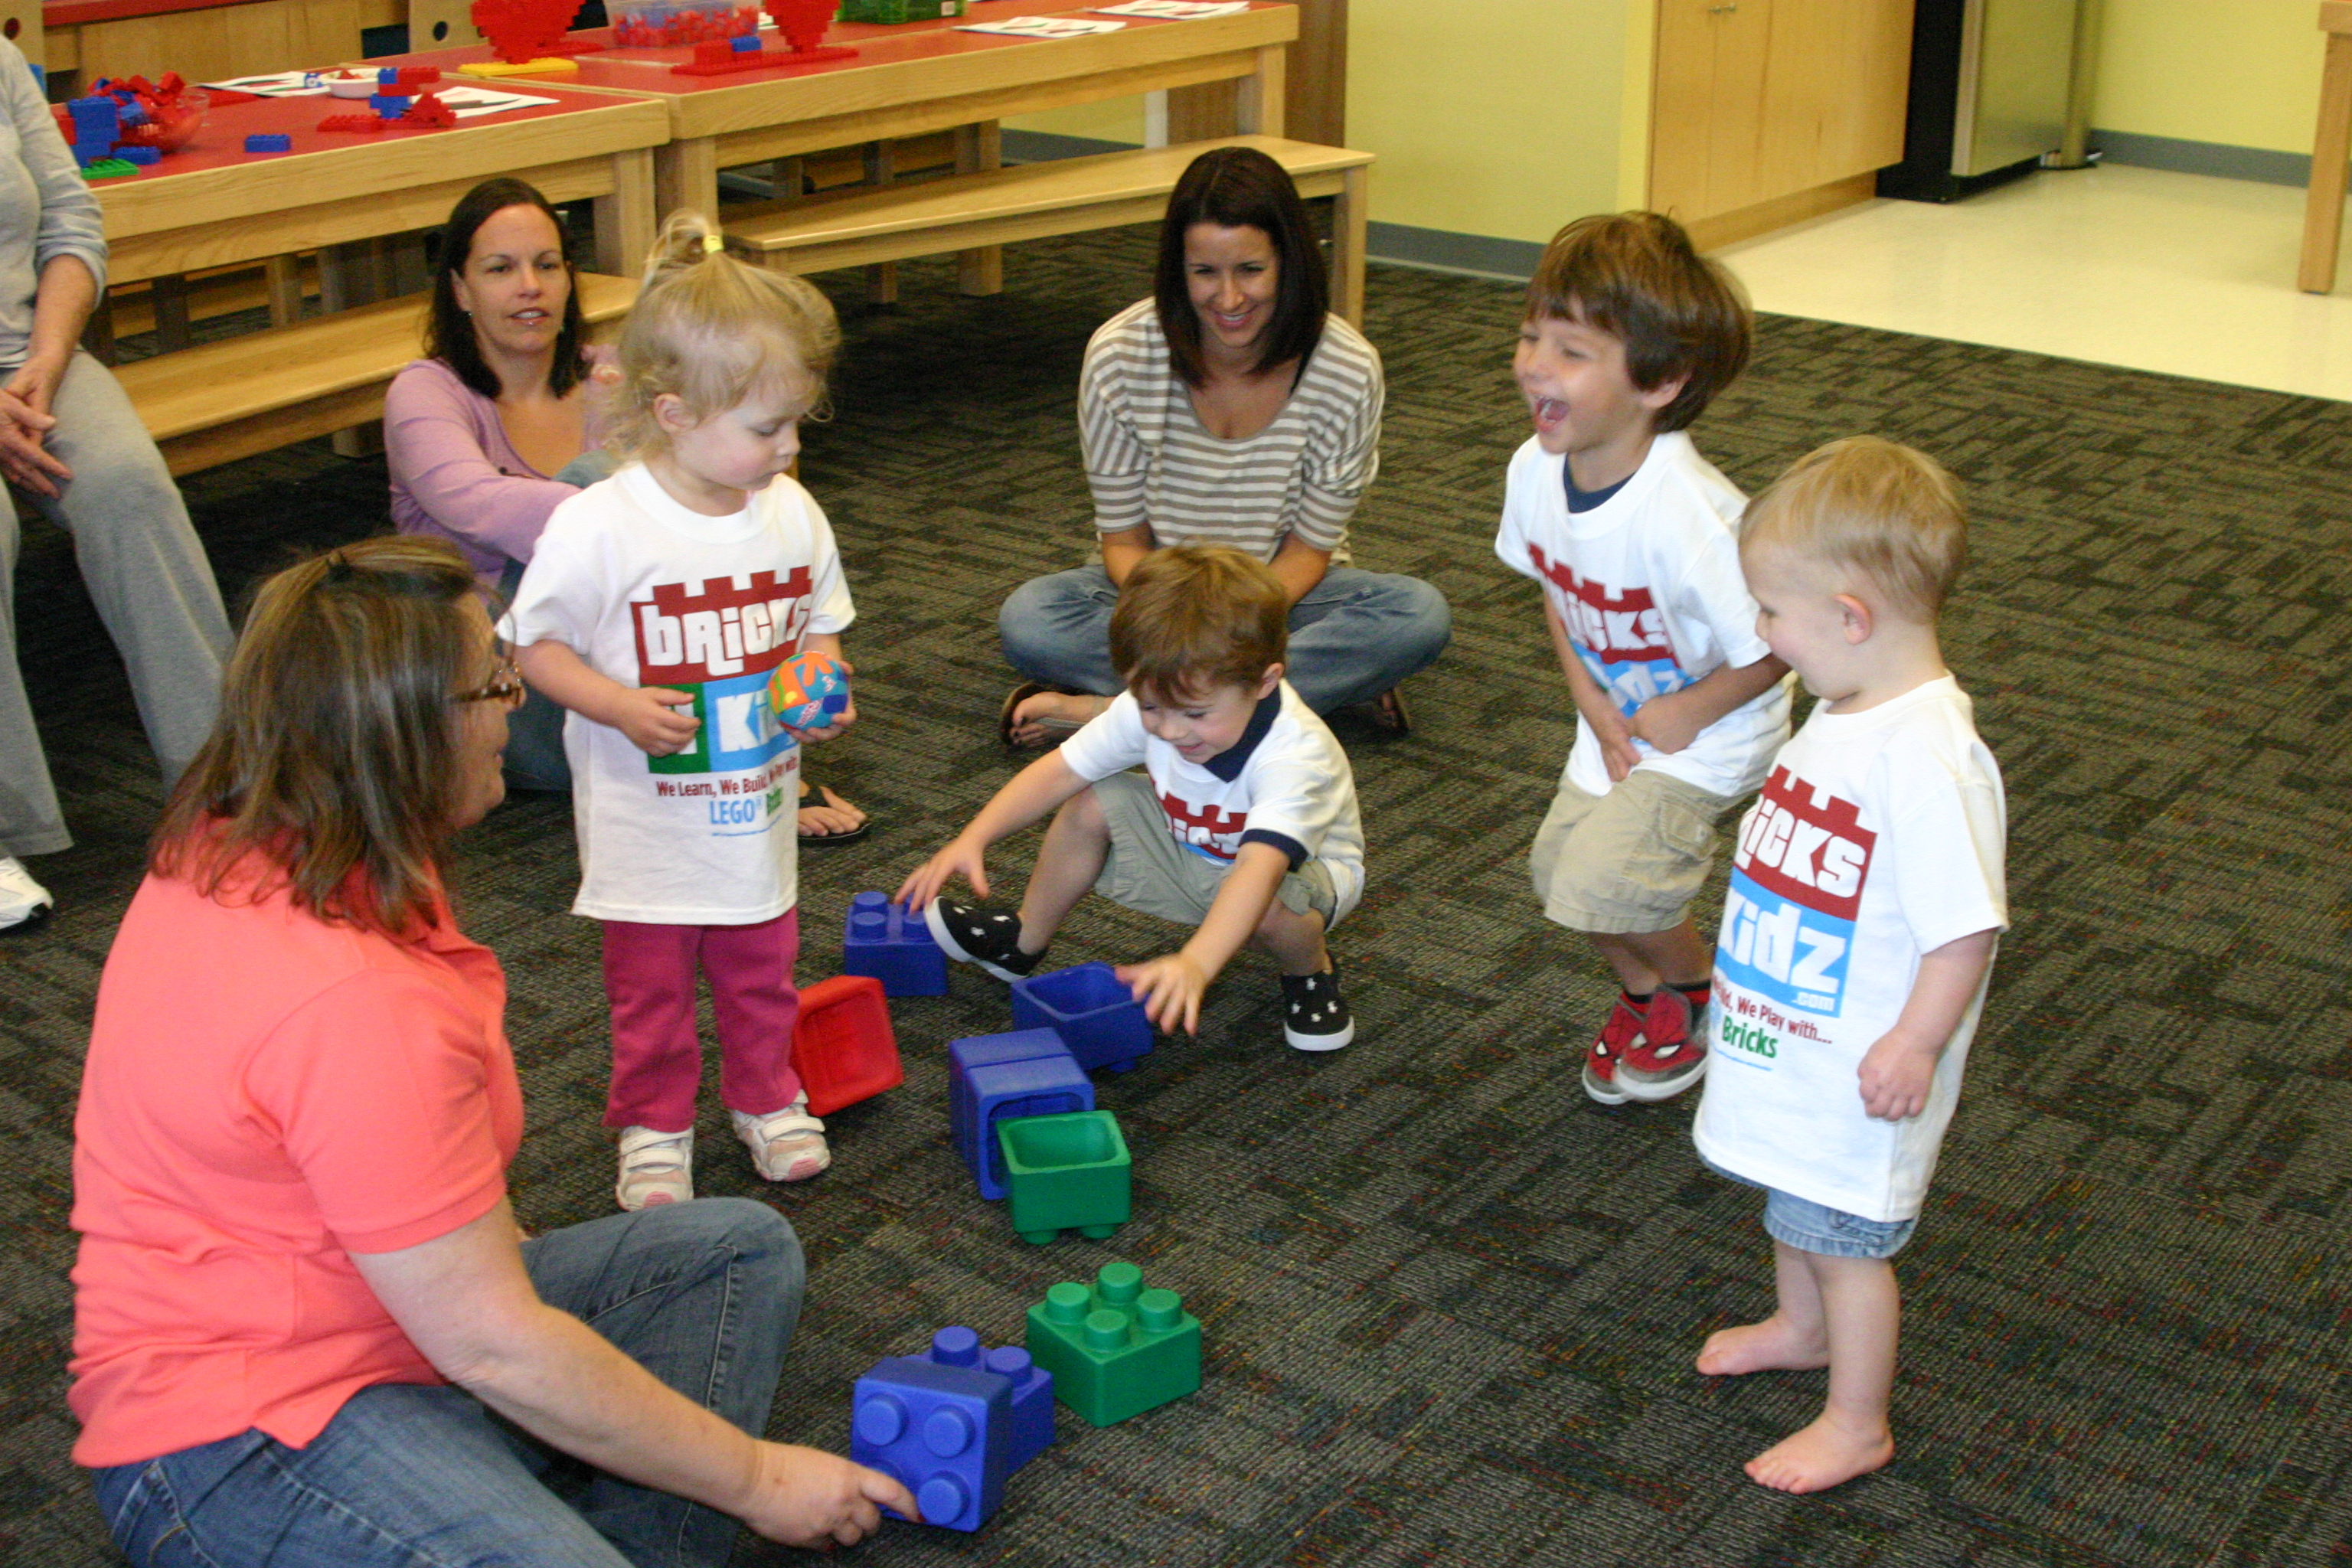 Preschool fun at Bricks 4 Kidz